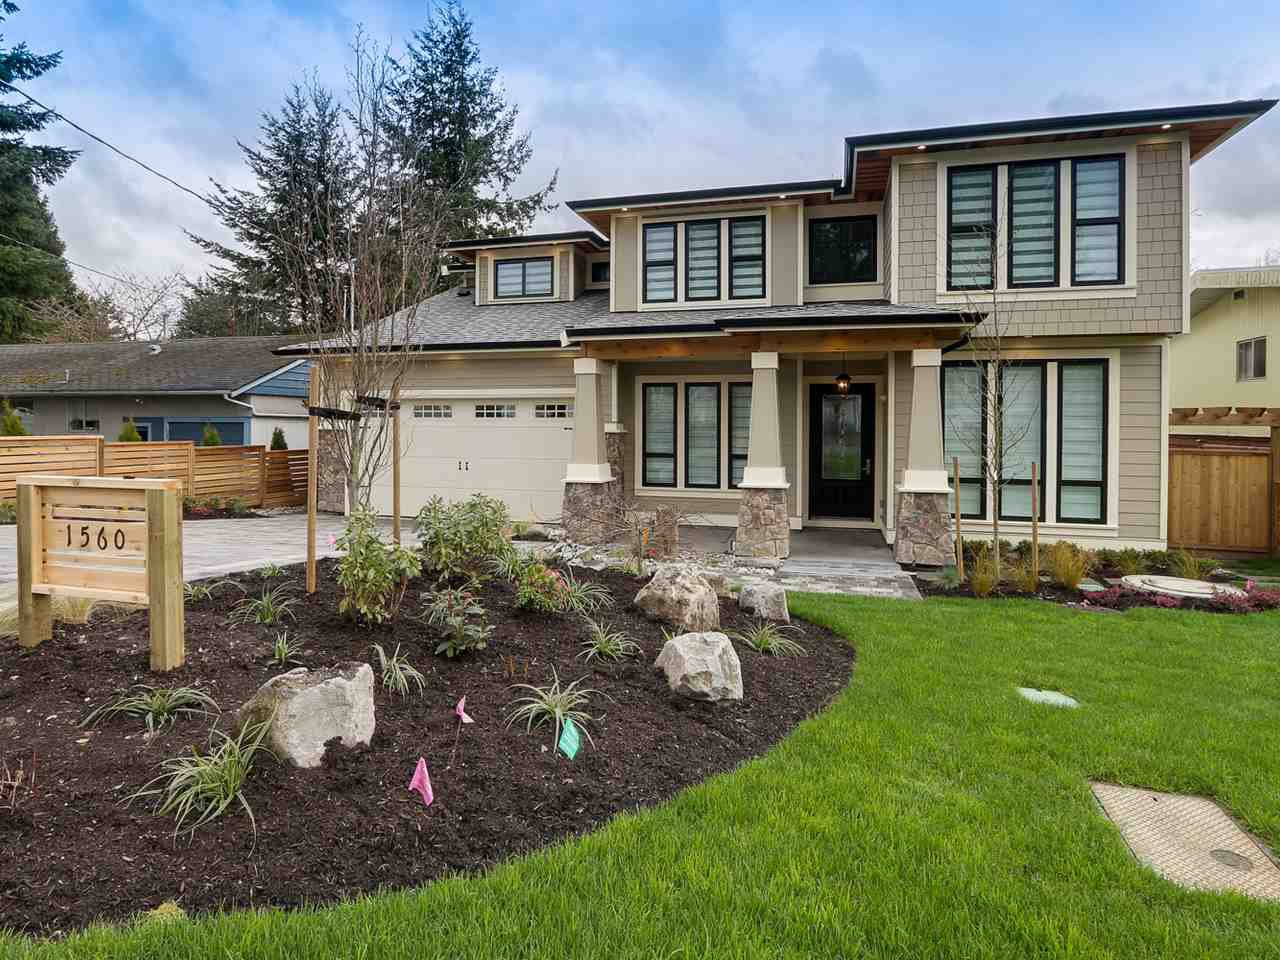 Main Photo: 1560 MAPLE Street: White Rock House for sale (South Surrey White Rock)  : MLS®# R2138926